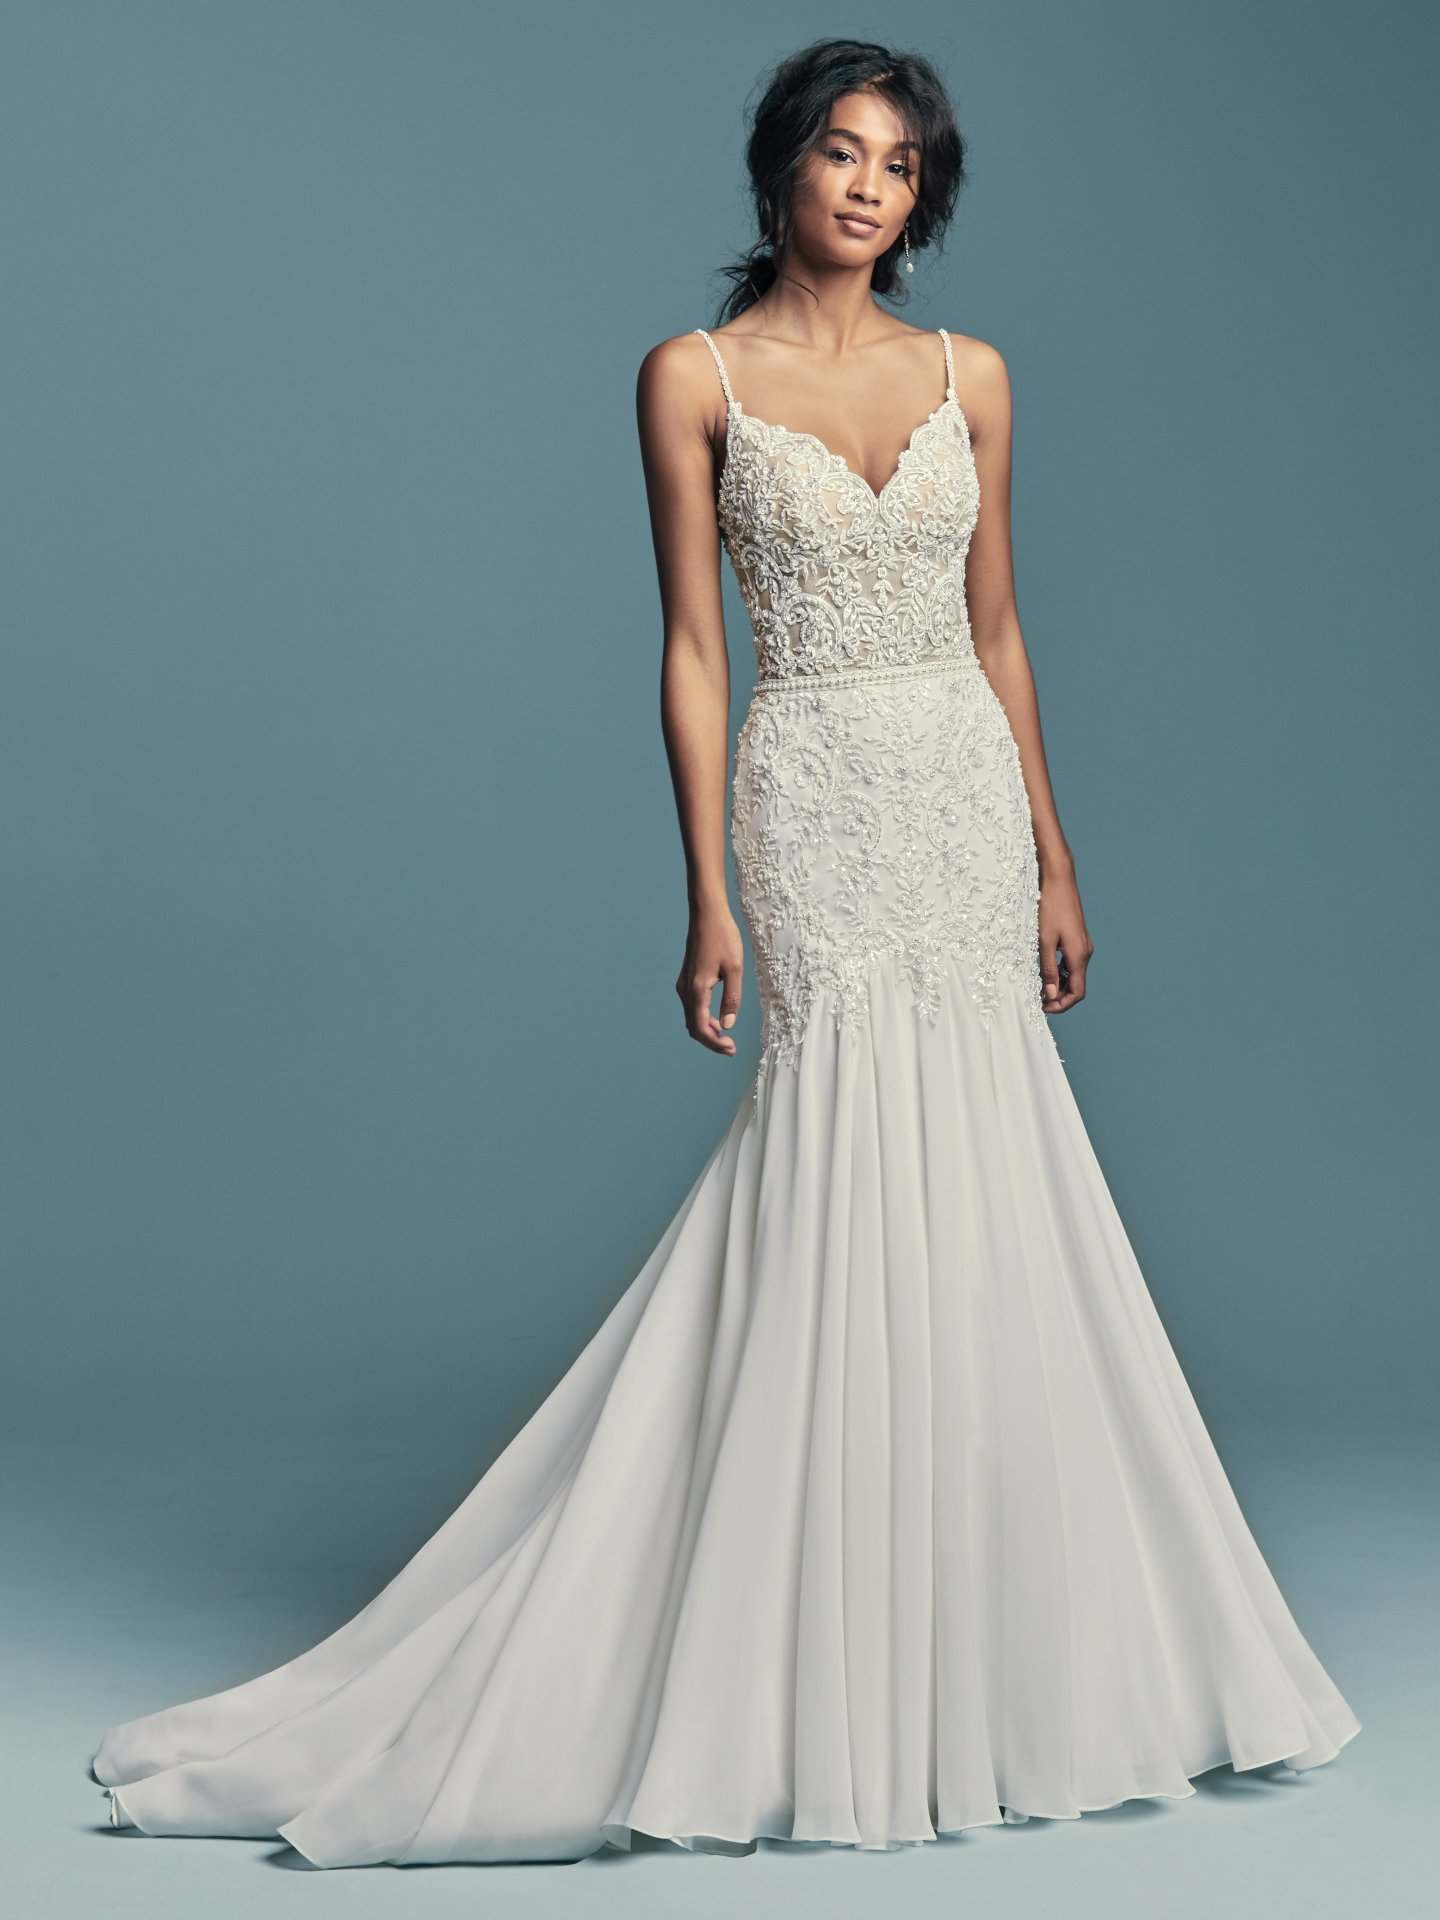 New Boho Wedding Dresses from the Lucienne Collection - Imani by Maggie Sottero